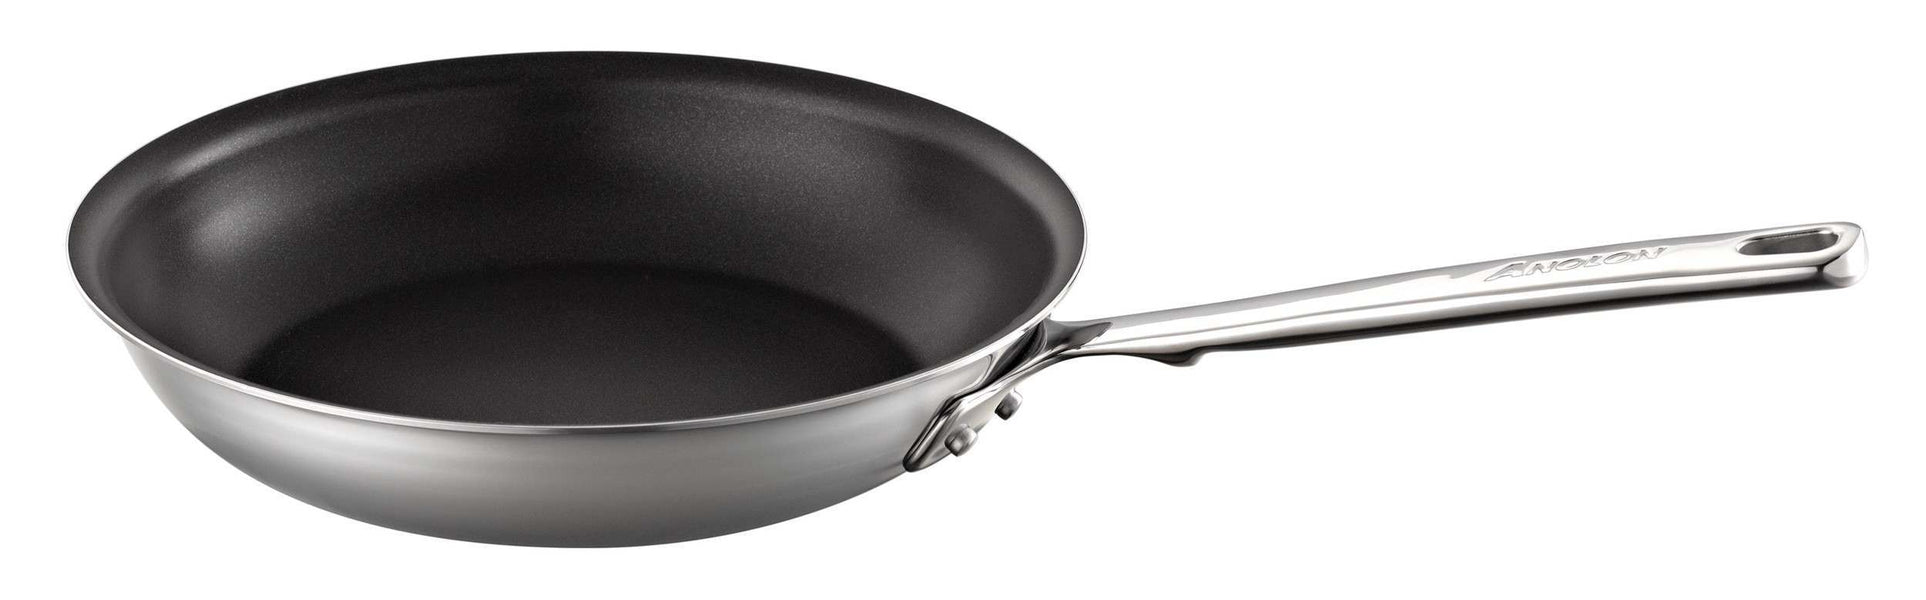 Anolon Authority Multi-Ply 26cm Skillet